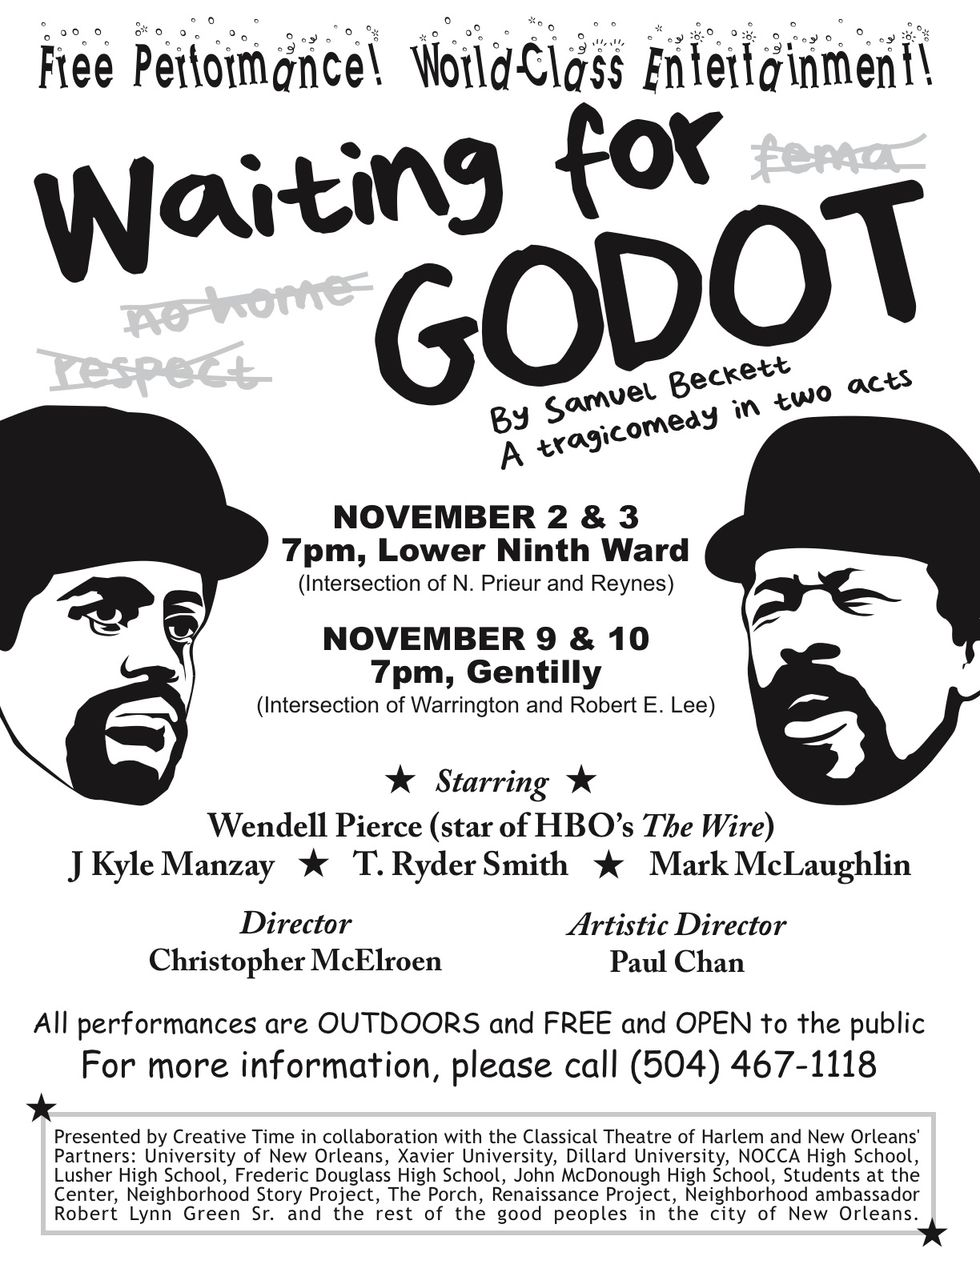 Godot Comes to New Orleans